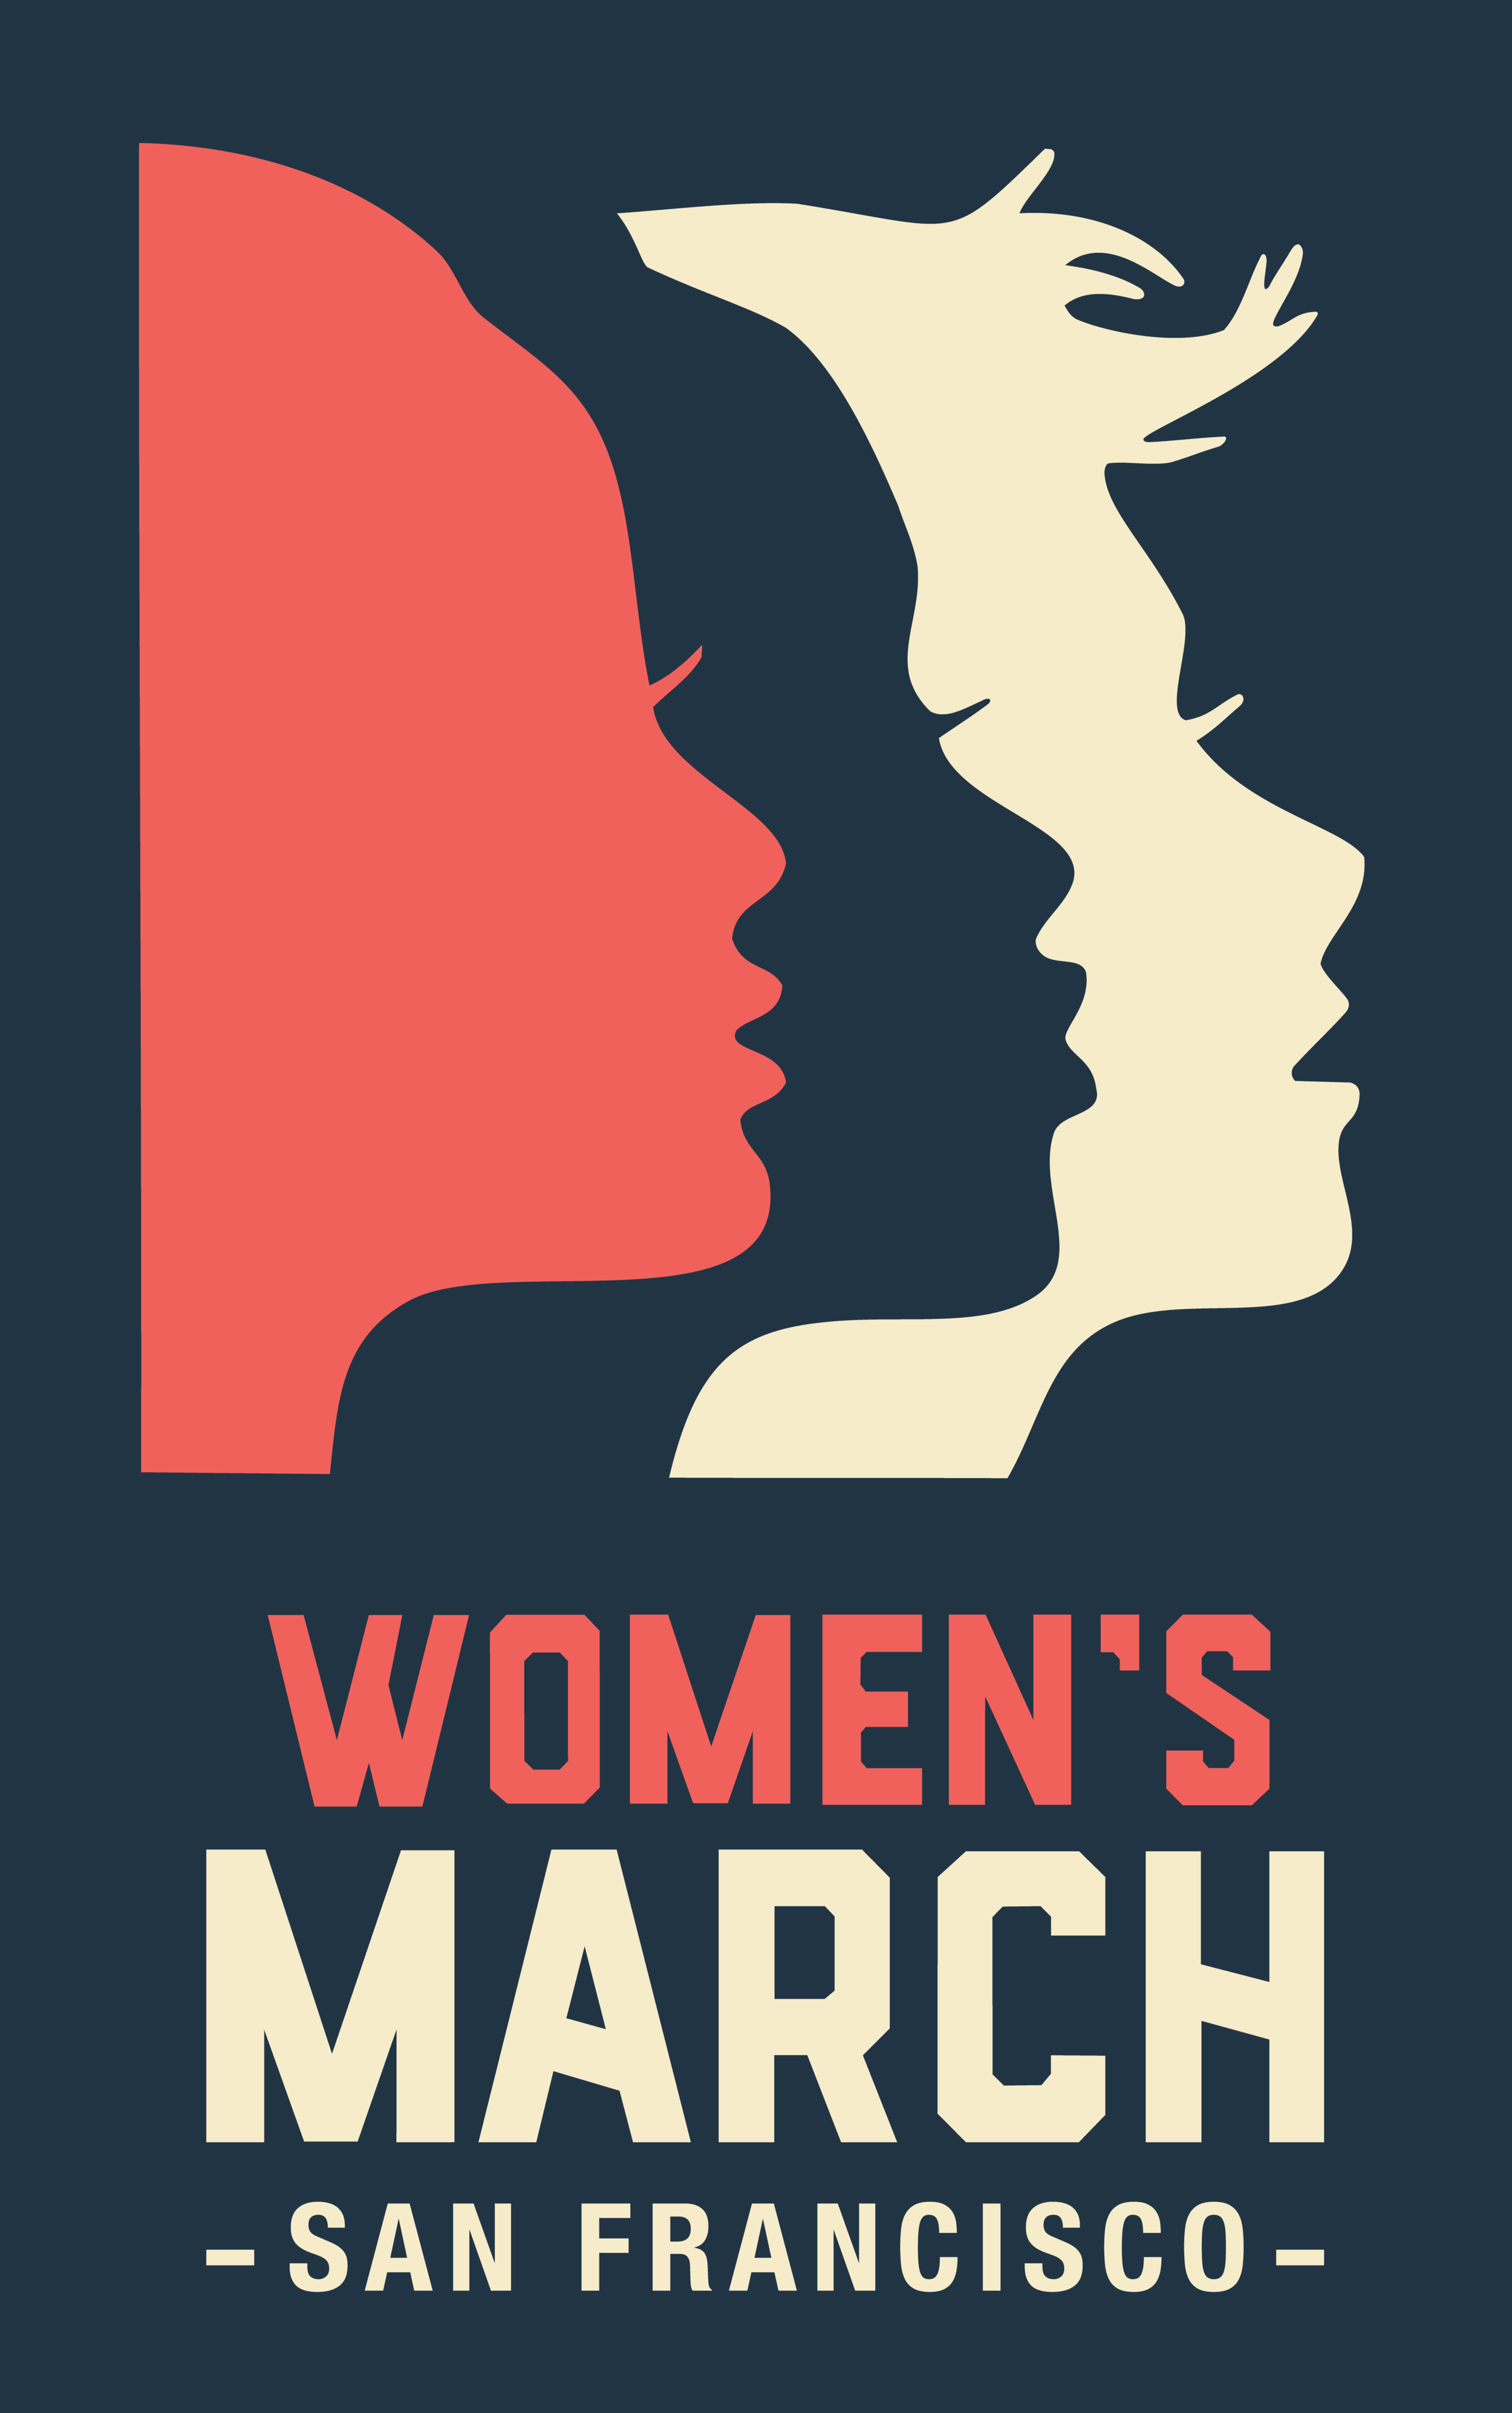 Women's March San Francisco Core Logo - Vertical